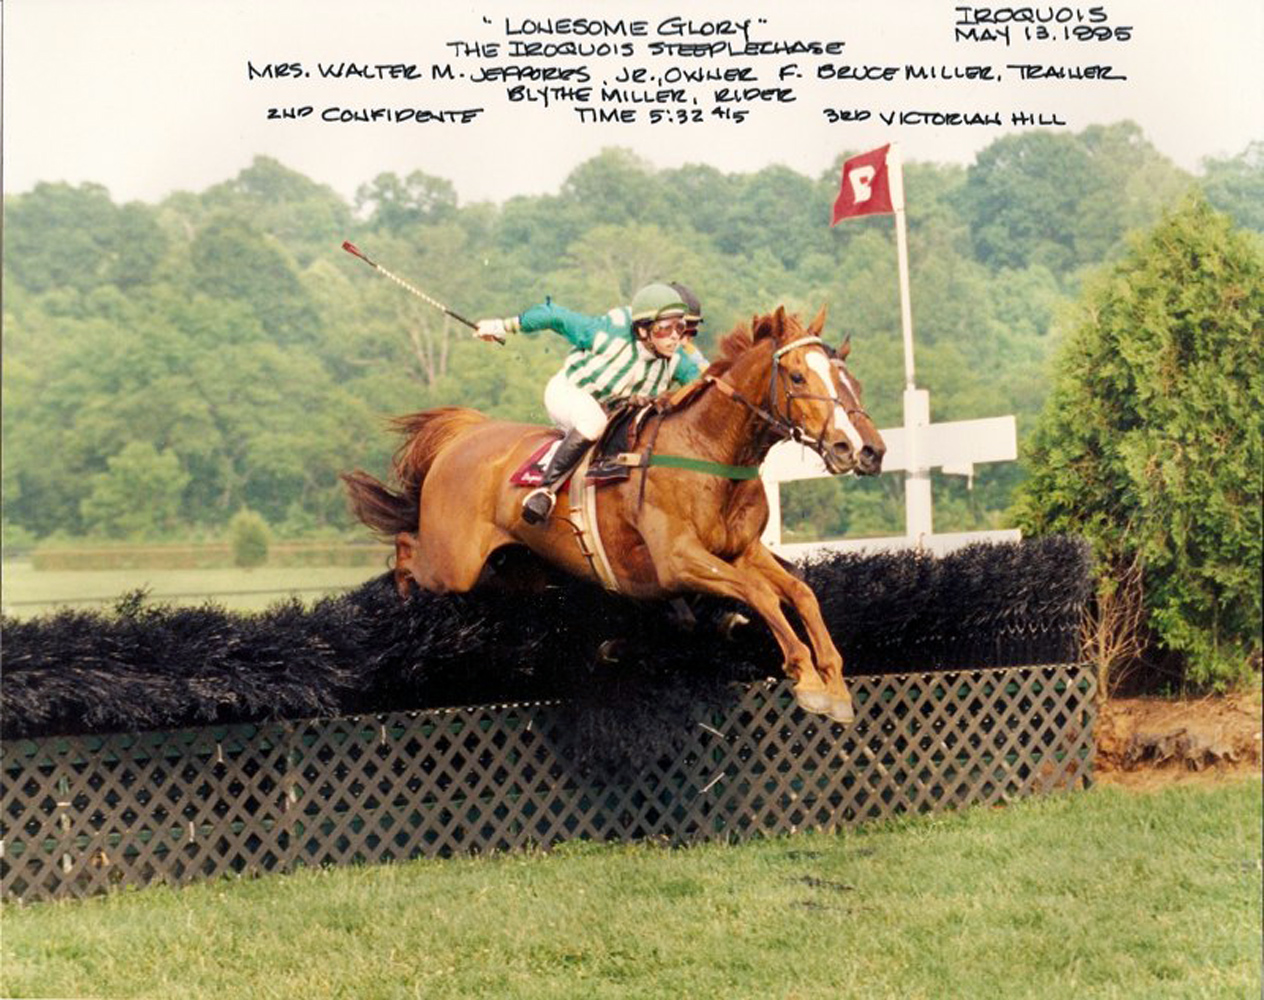 Lonesome Glory, Blythe Miller up, winning the 1995 Iroquois Steeplechase (Courtesy of Bruce Miller)